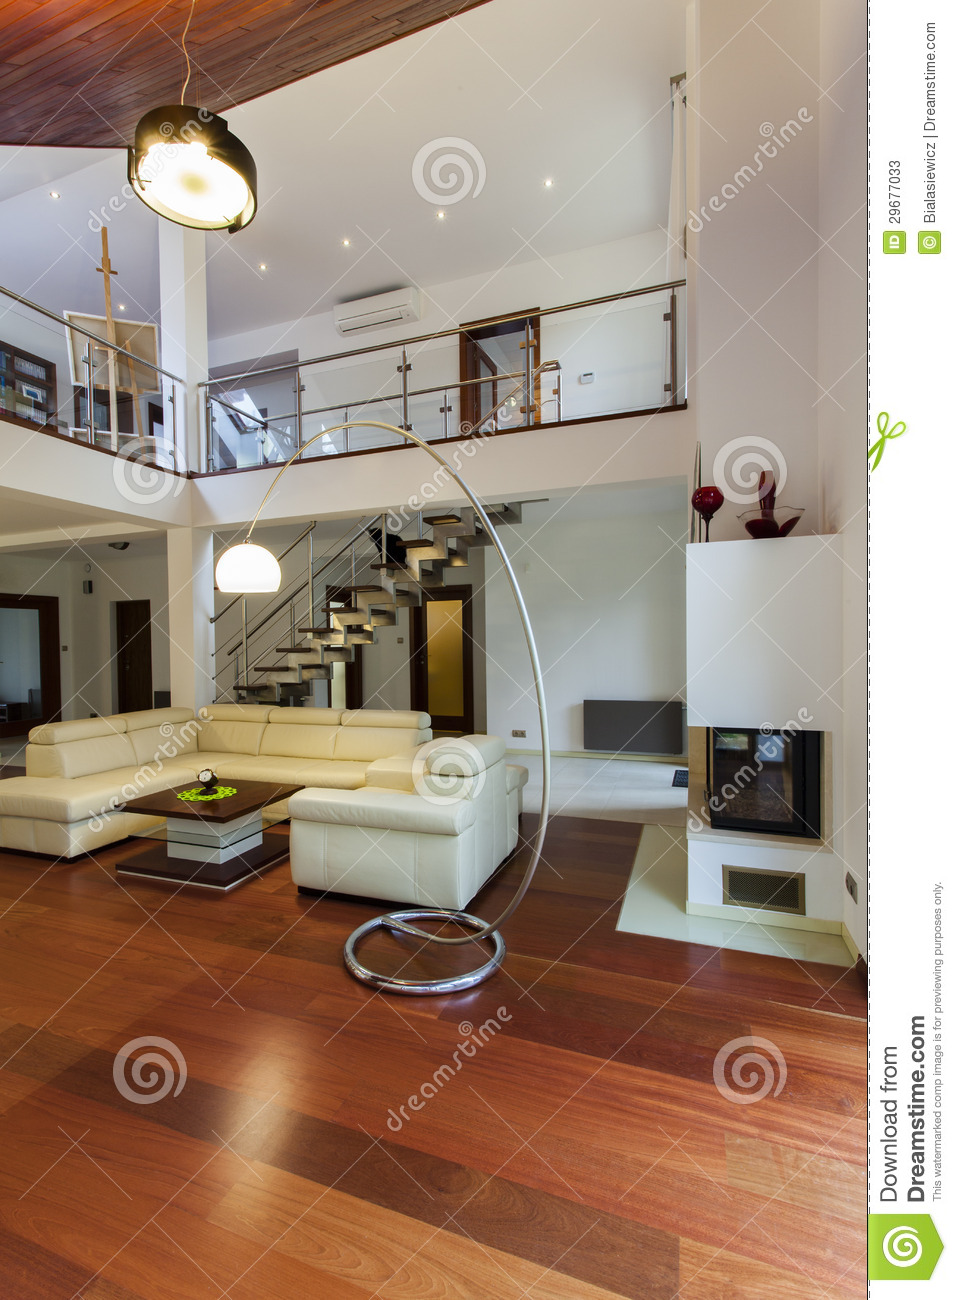 Woonkamer 4 Bij 5 Living Room And Entresol Stock Photos - Image: 29677033